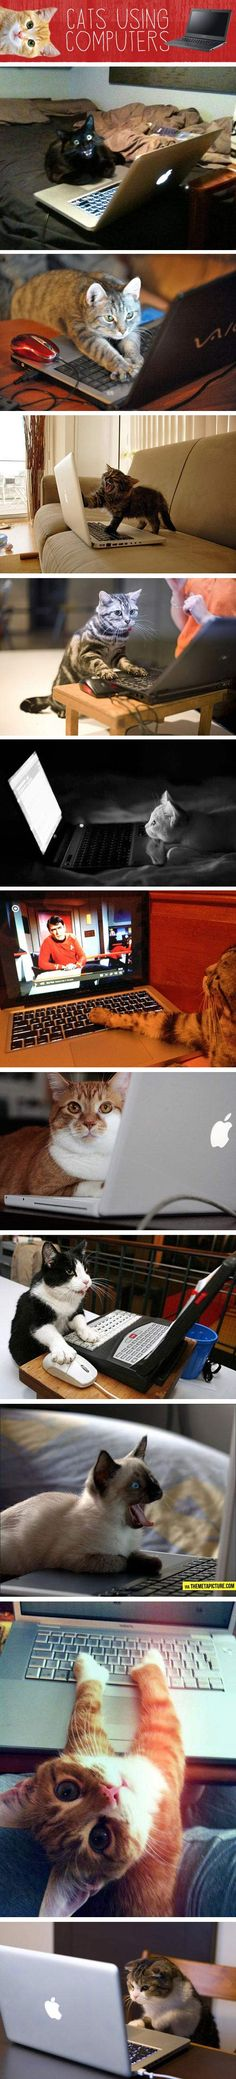 Cats Using Computers…